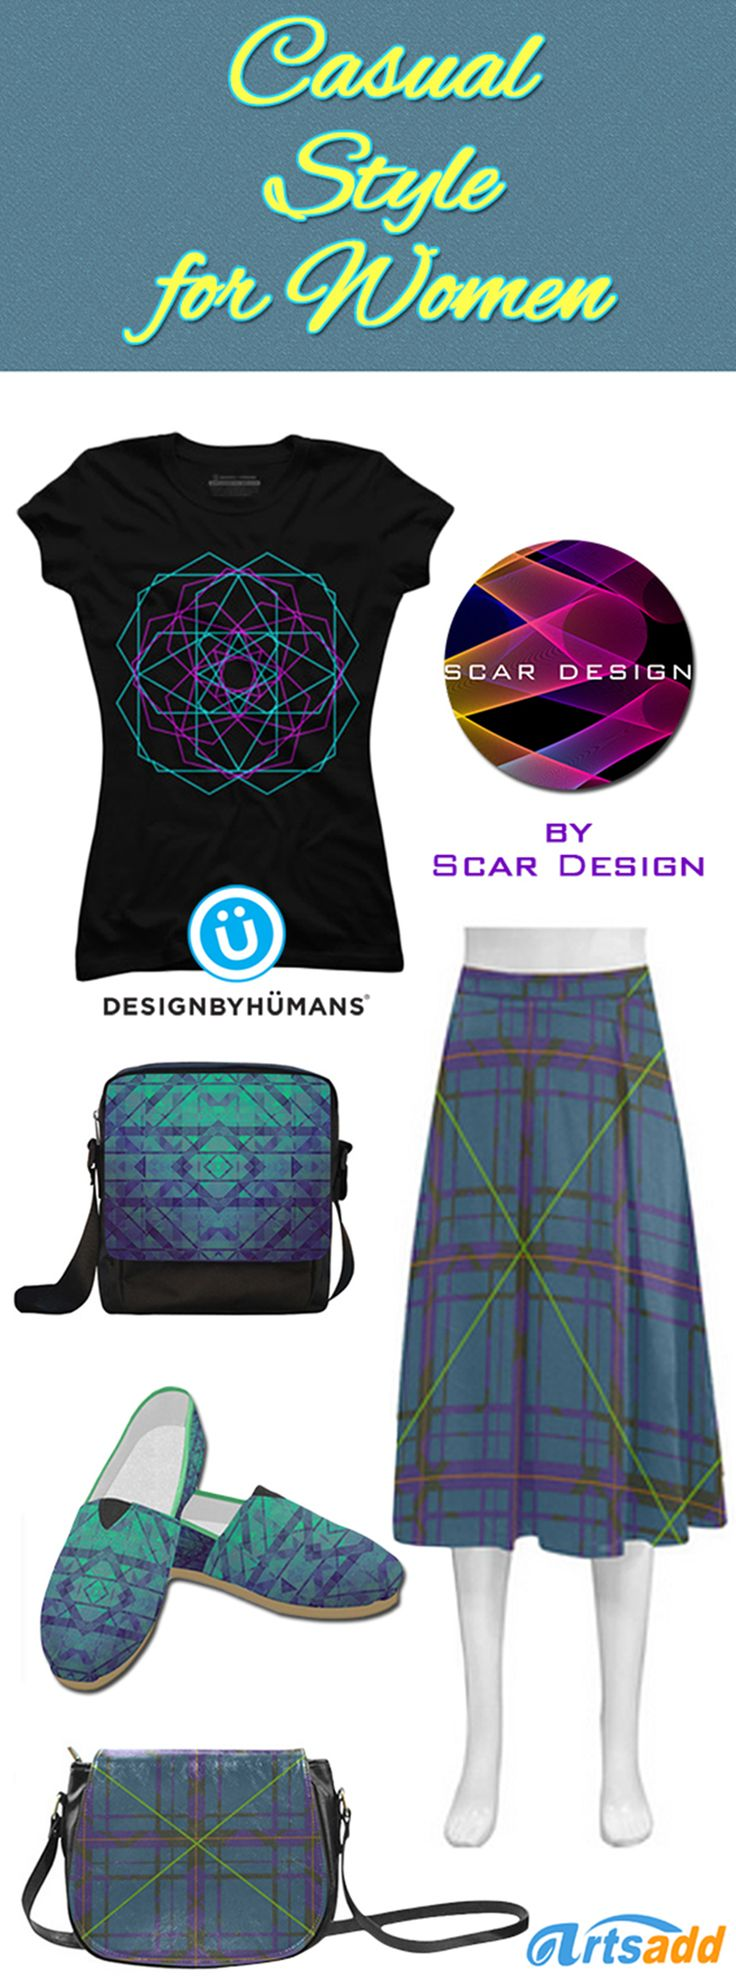 Casual Style #1 by Scar Design. http://www.artsadd.com/shop/sci_fi_dream_geometric_pattern_women_s_casual_shoes_model_004-1498295.html  #casual #style #casualwomen #fashion #bag #shoes #canvasshoes #spring #springshoes #skirt #tshirt #womenstshirts #giftsforher #colorful #gifts #designbyhumans #artsadd #scardesign #crossbodybag